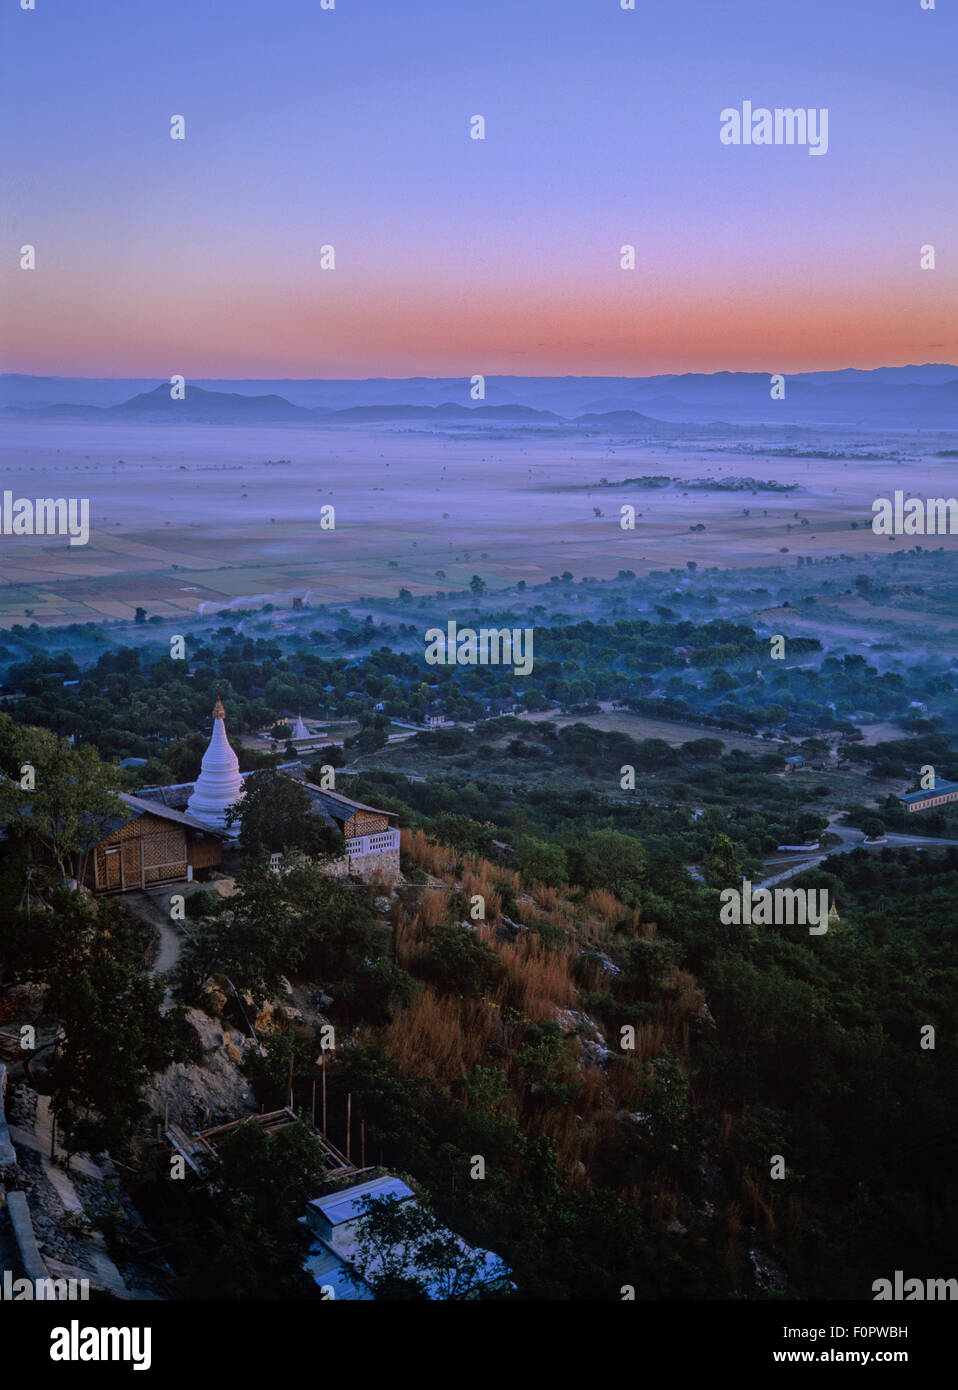 Mandalay Hill, sunset, outlook, - Stock Image